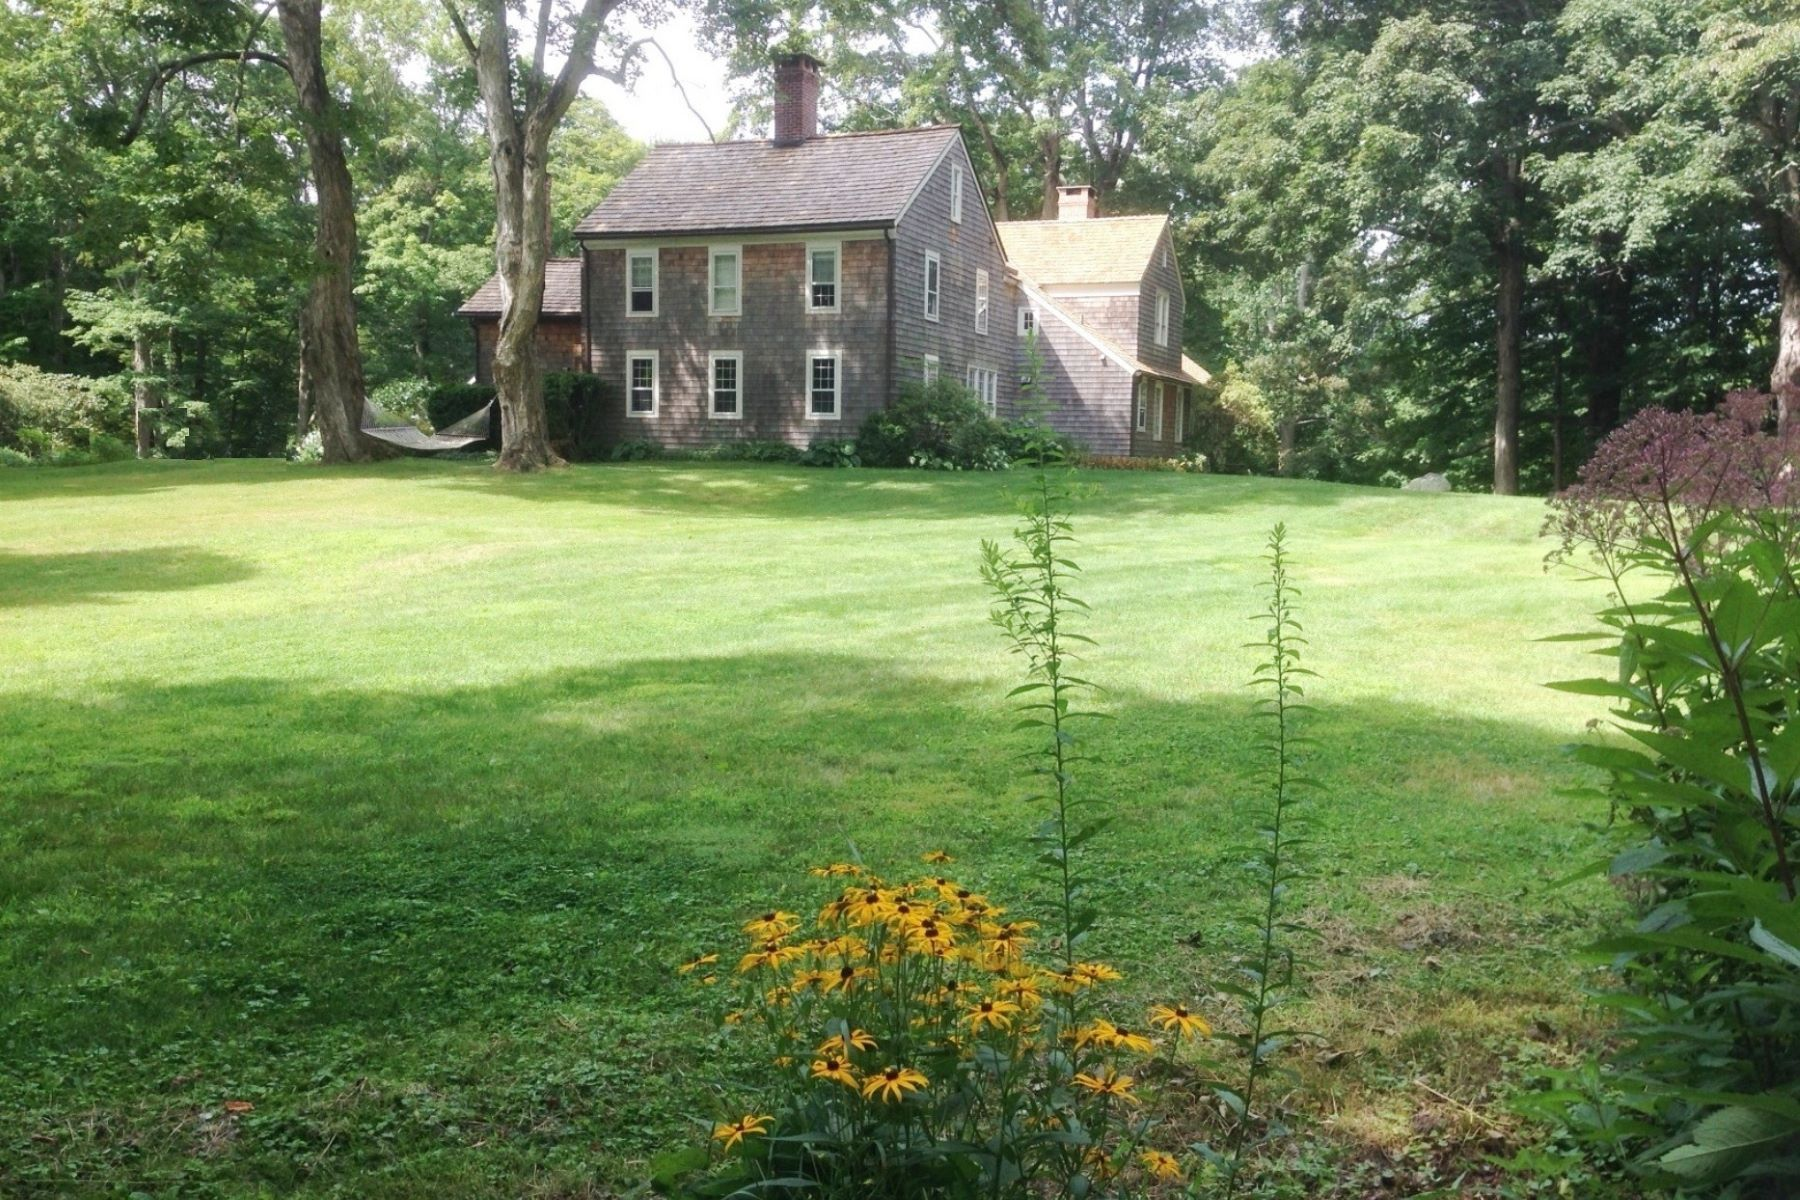 Single Family Home for Rent at 156 Deforest Road Wilton, Connecticut, 06897 United States